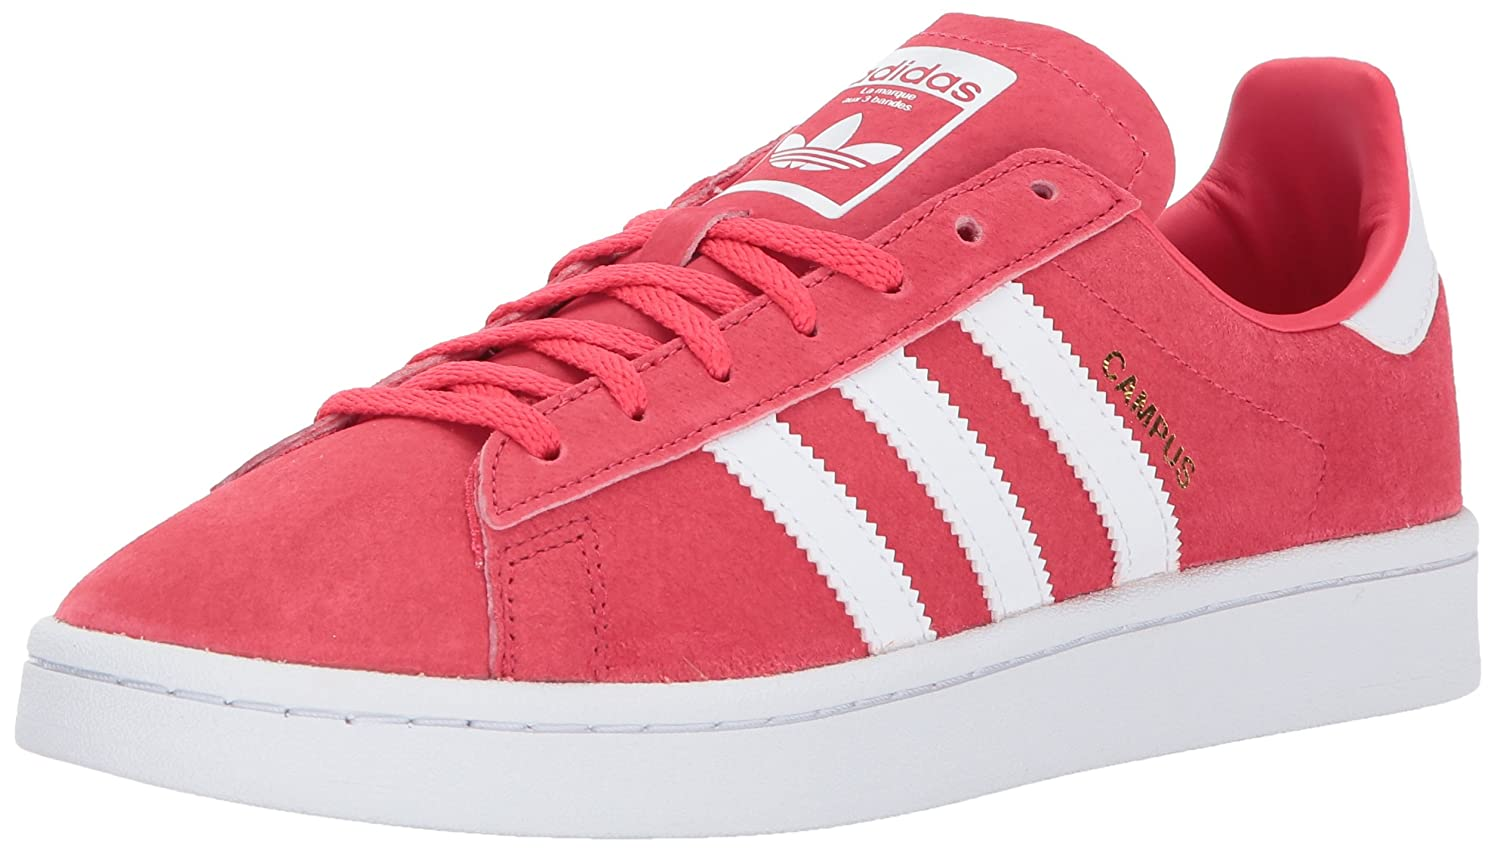 adidas Originals Women's Campus W Sneaker B01MXYB97N 11 B(M) US|Core Pink/White/Crystal White